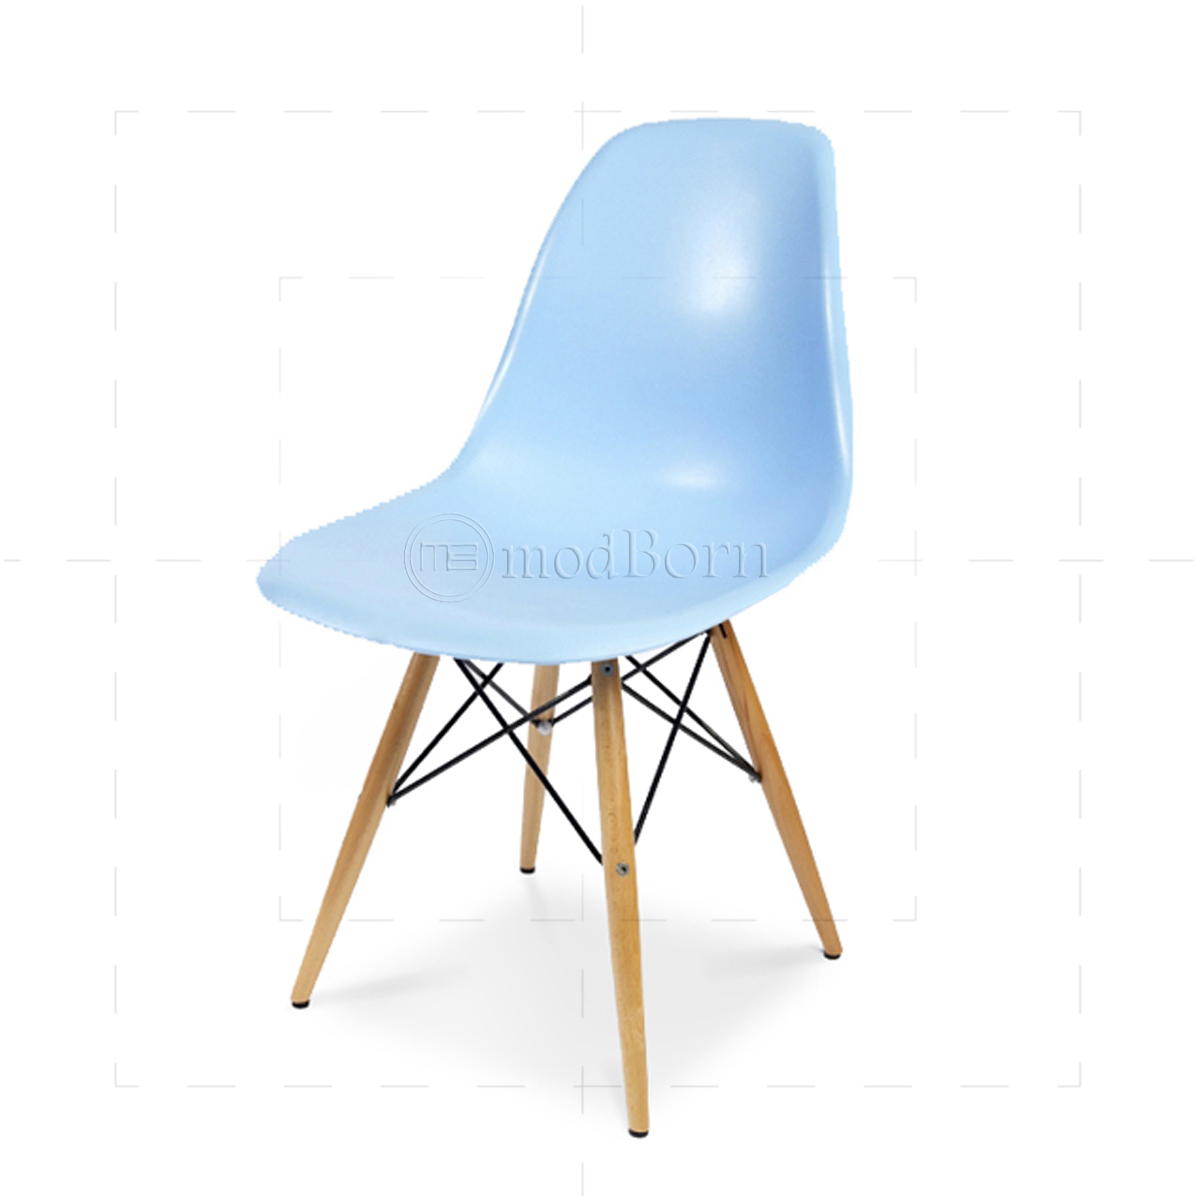 eames style dining dsw chair blue replica. Black Bedroom Furniture Sets. Home Design Ideas